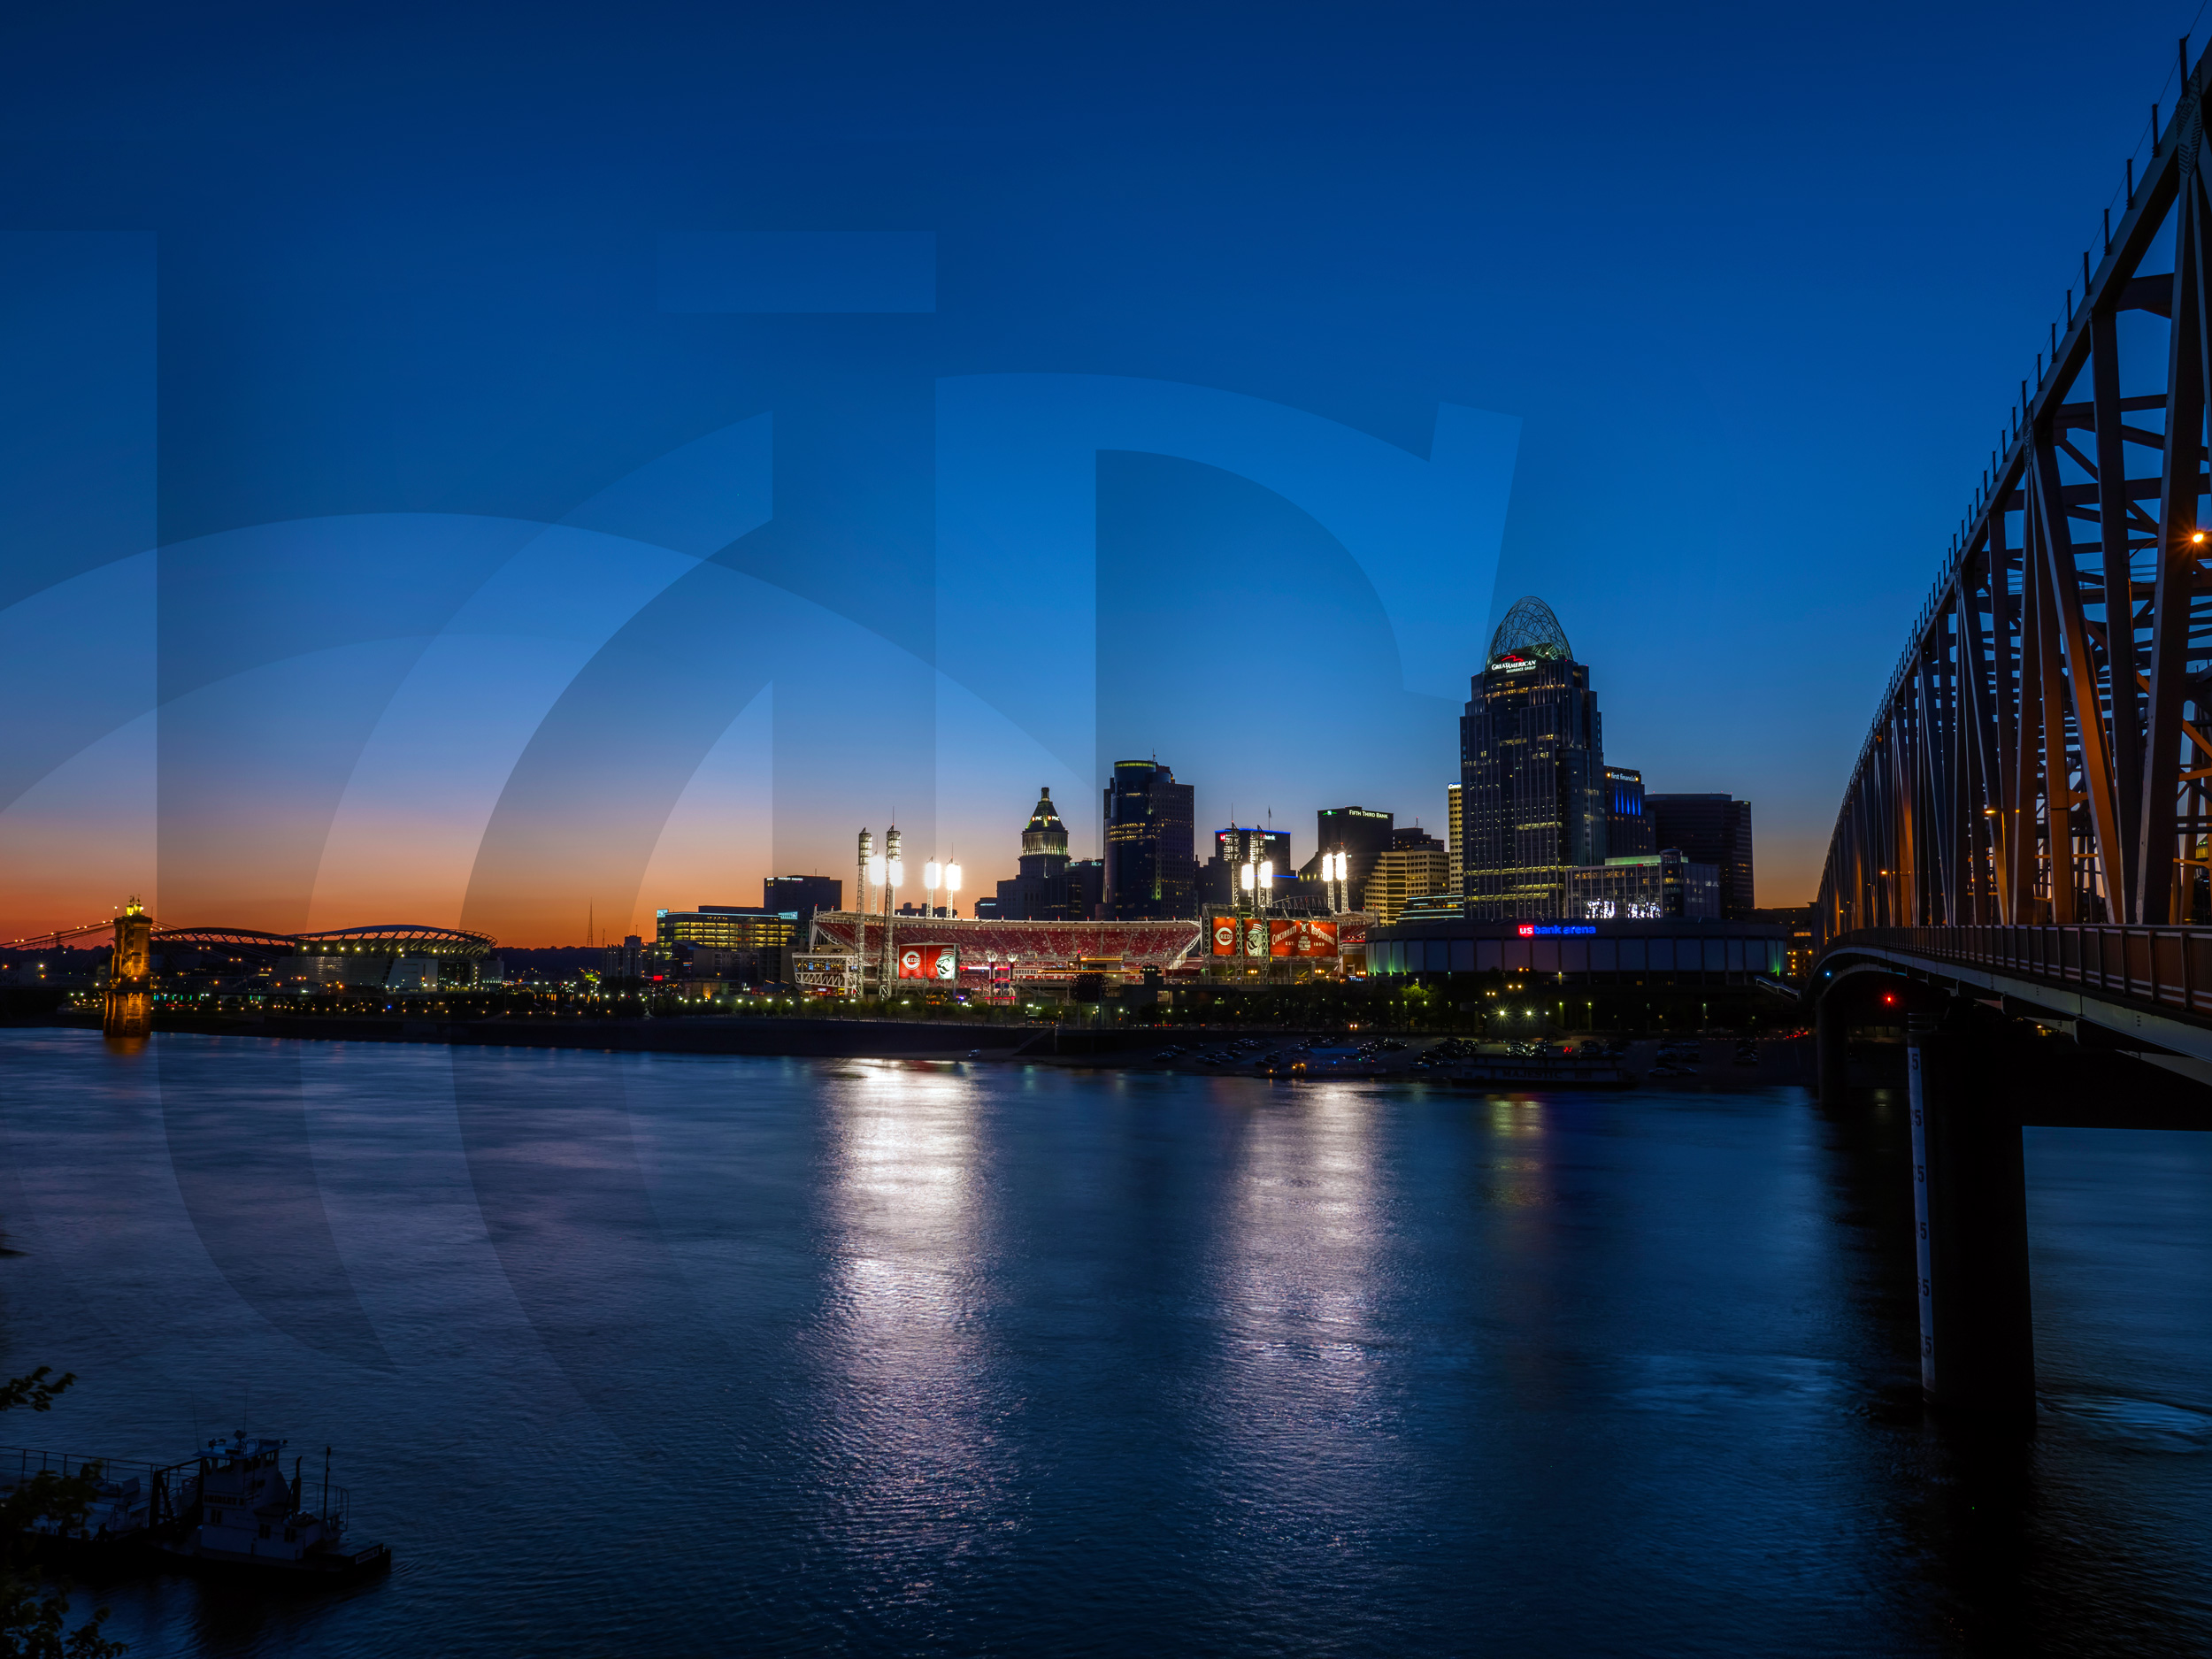 Cincinnati's riverfront at dusk